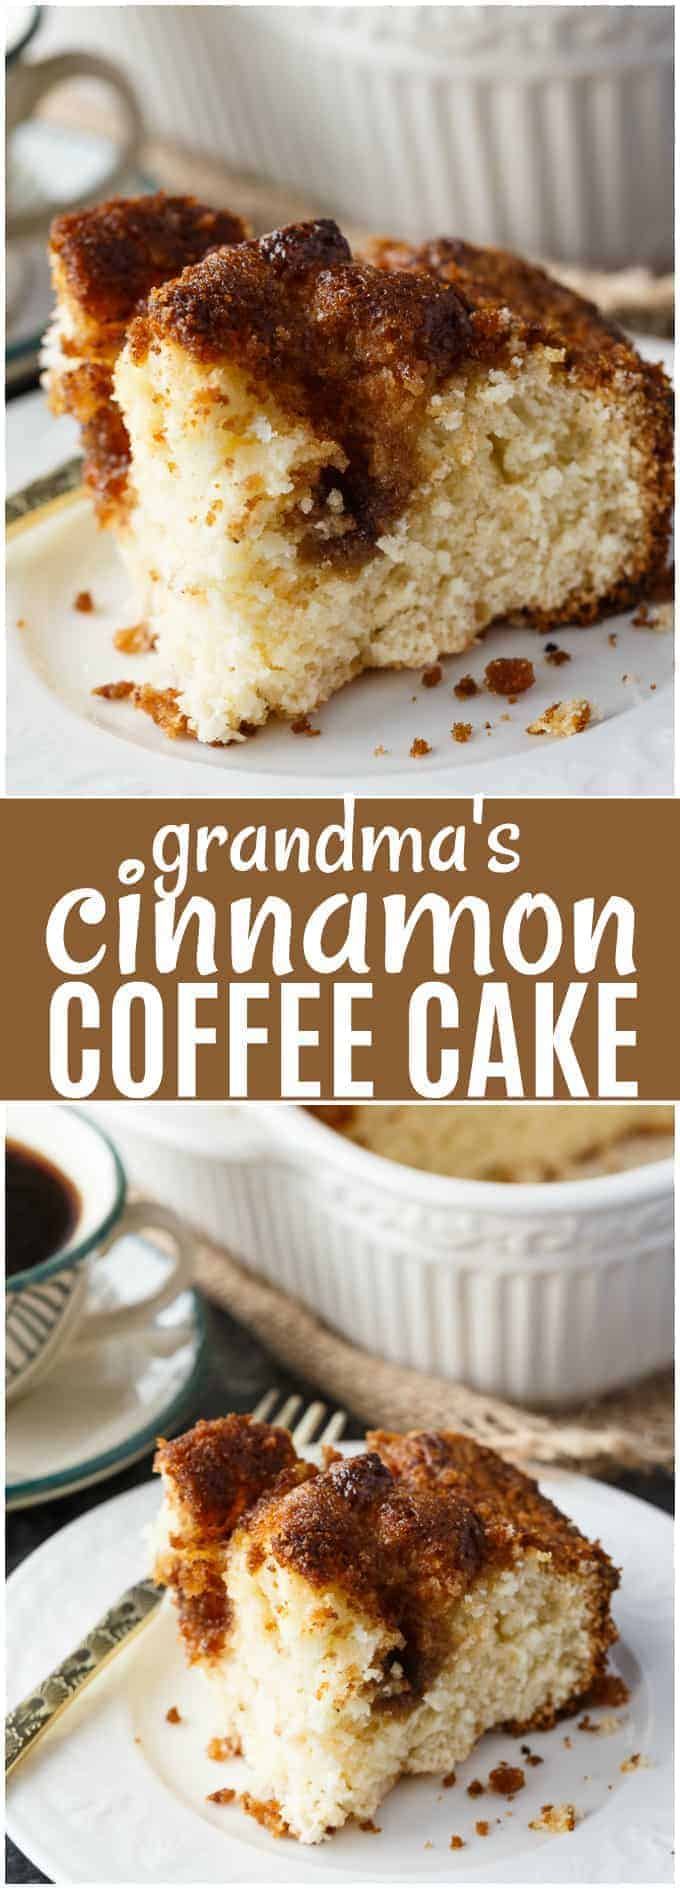 Grandma's Cinnamon Coffee Cake - Sweet, moist and melt-in-your-mouth good. This coffee cake recipe will bring back fond memories of visits at grandma's house.